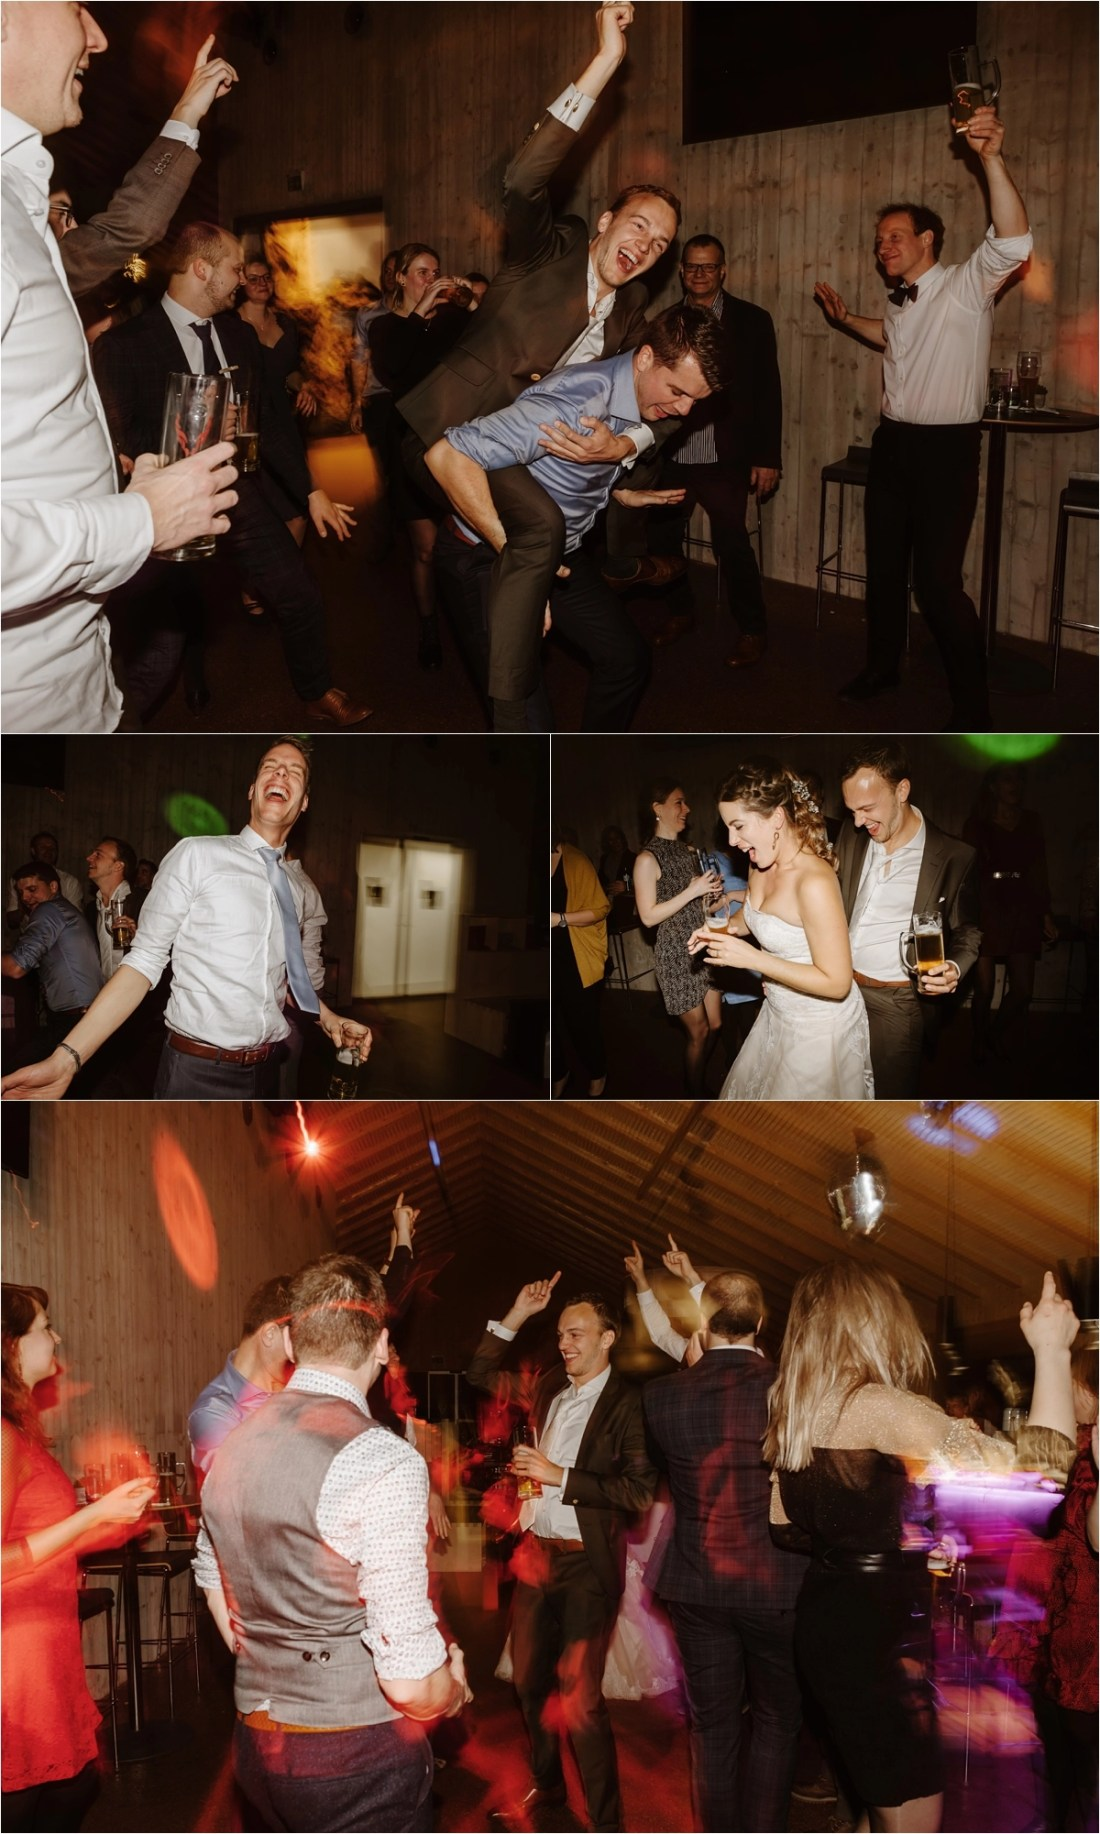 An Apres Ski inspired wedding reception at the Schmiedhof alm in Austria by Wild Connections Photography